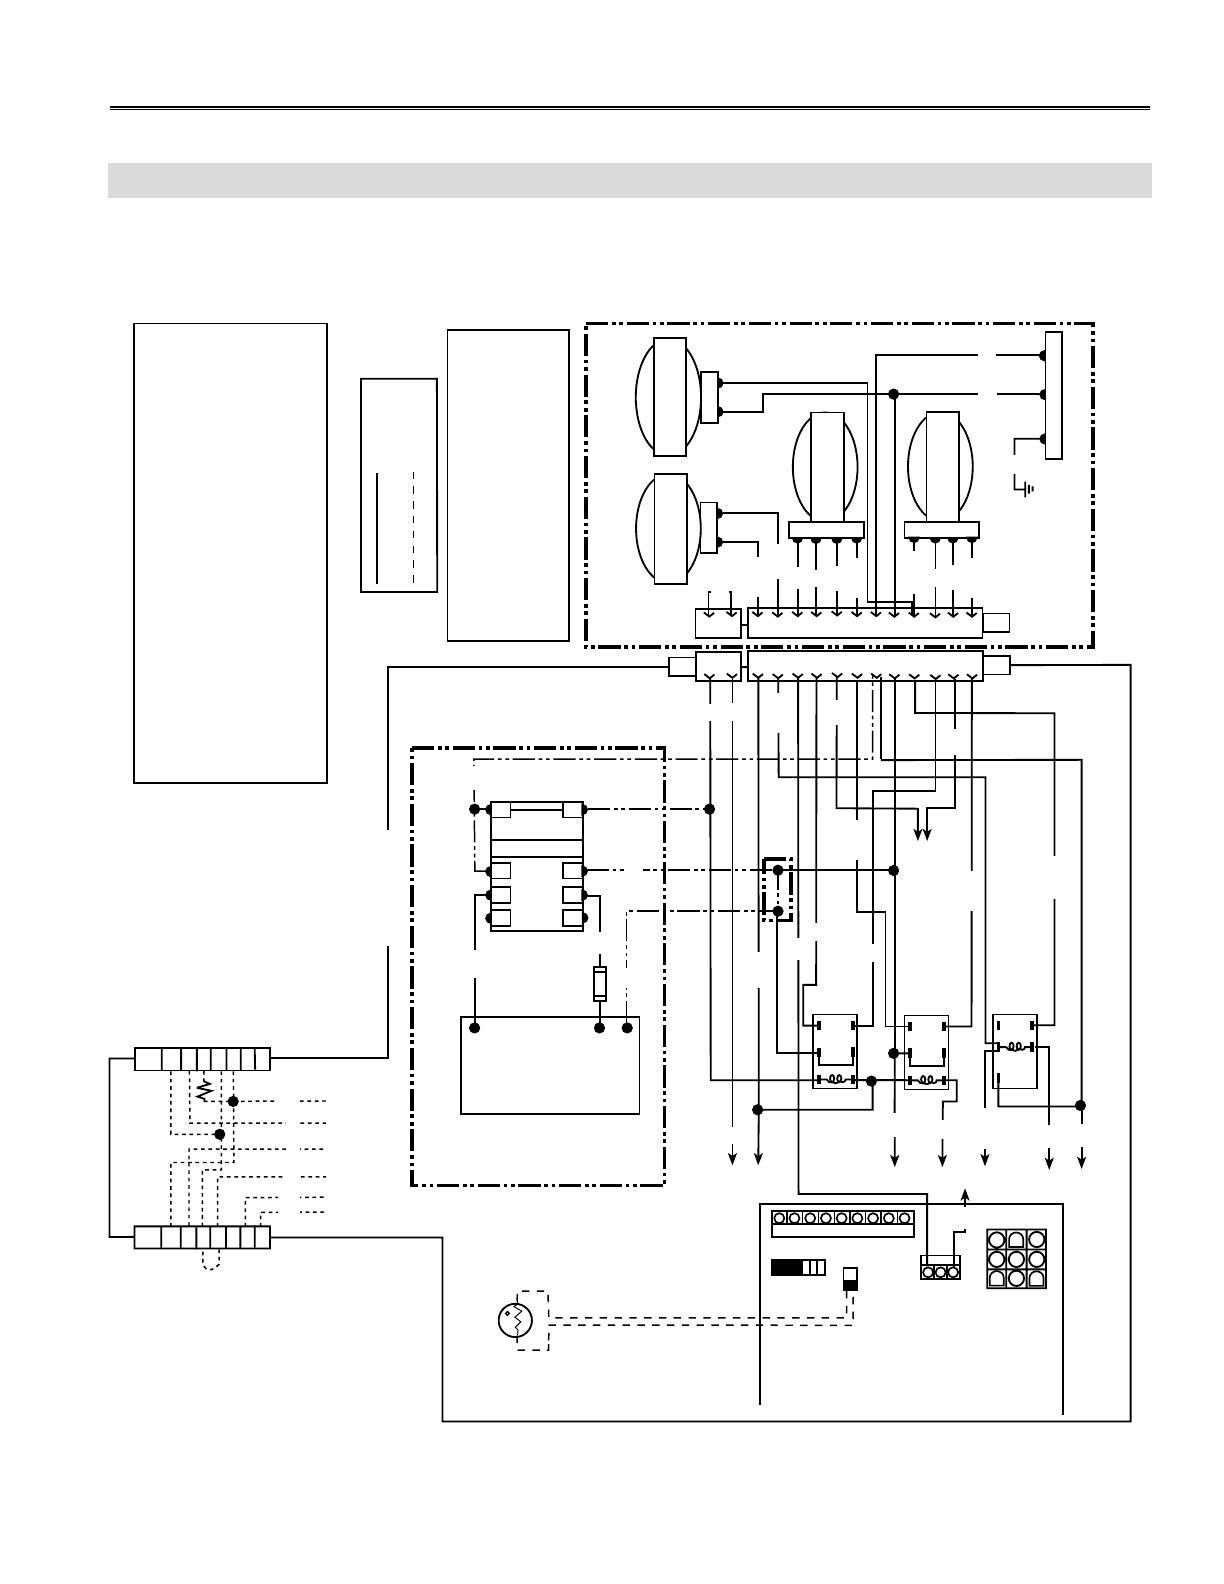 wiring diagram for a kitchen with 1200 Cfm on Id22 together with 00005 together with 1bbbb610a759da92 4 Bedroom One Story Ranch House Plans Inside 4 Bedroom additionally 140619 Installing New Dishwasher Double Sink moreover Bg3240.